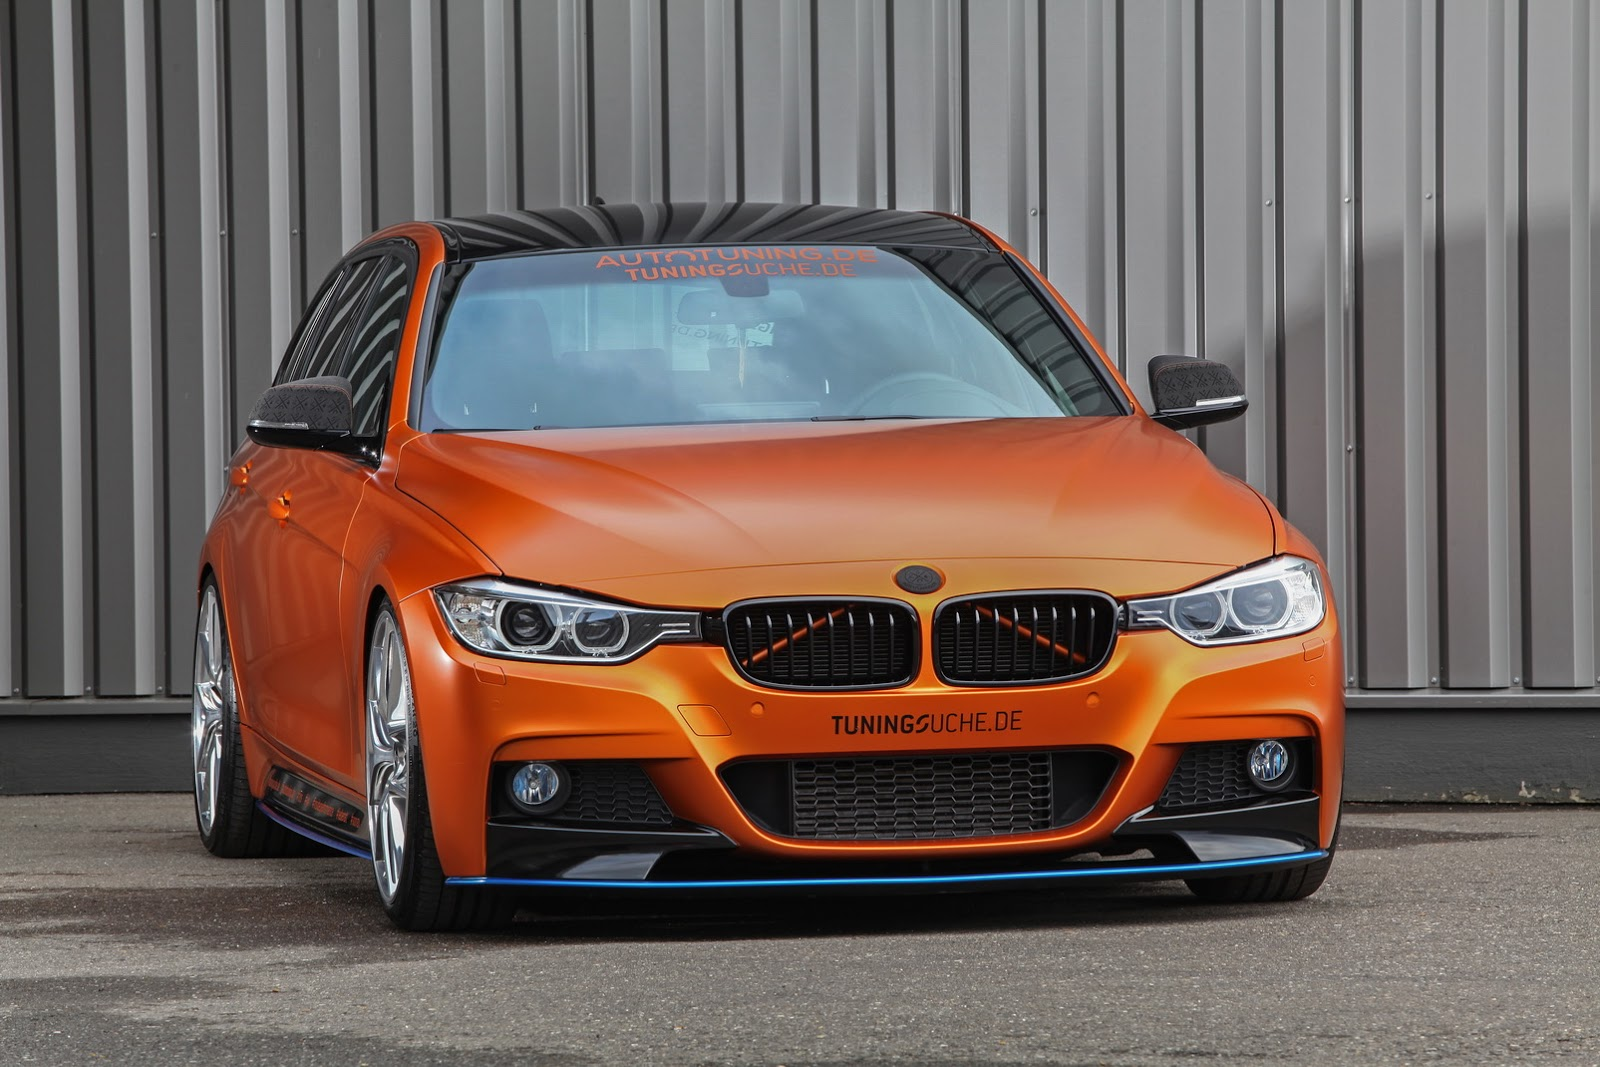 2016 Bmw 3 Series Touring TuningSuche